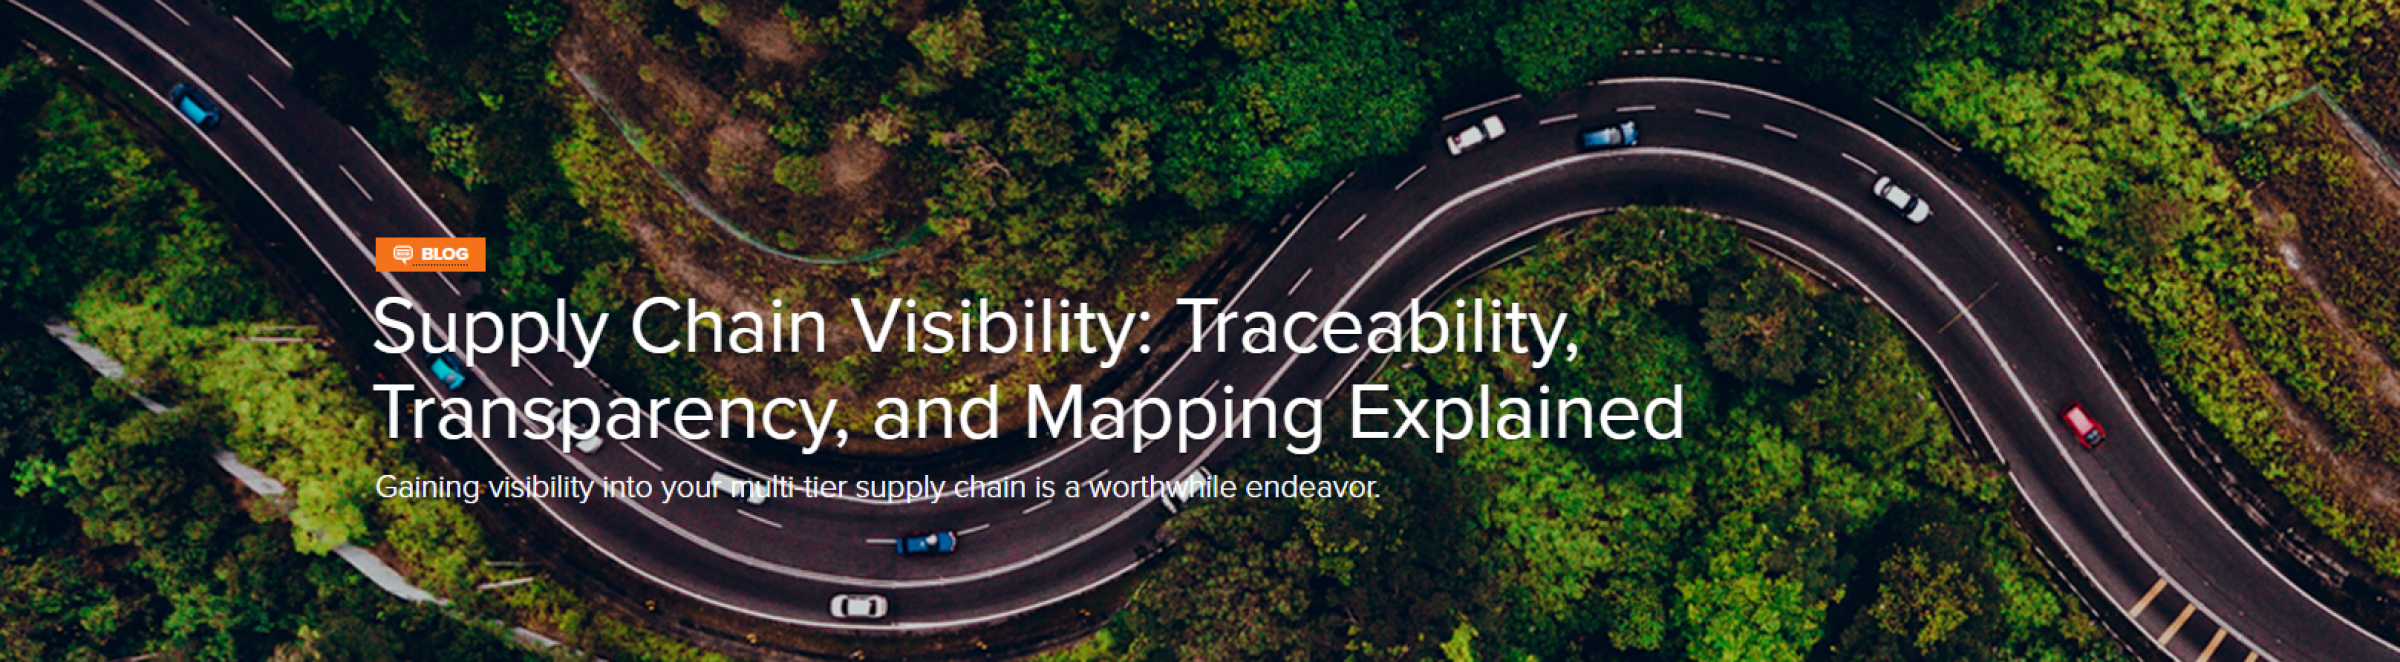 Supply Chain Visibility: Traceability, Transparency, and